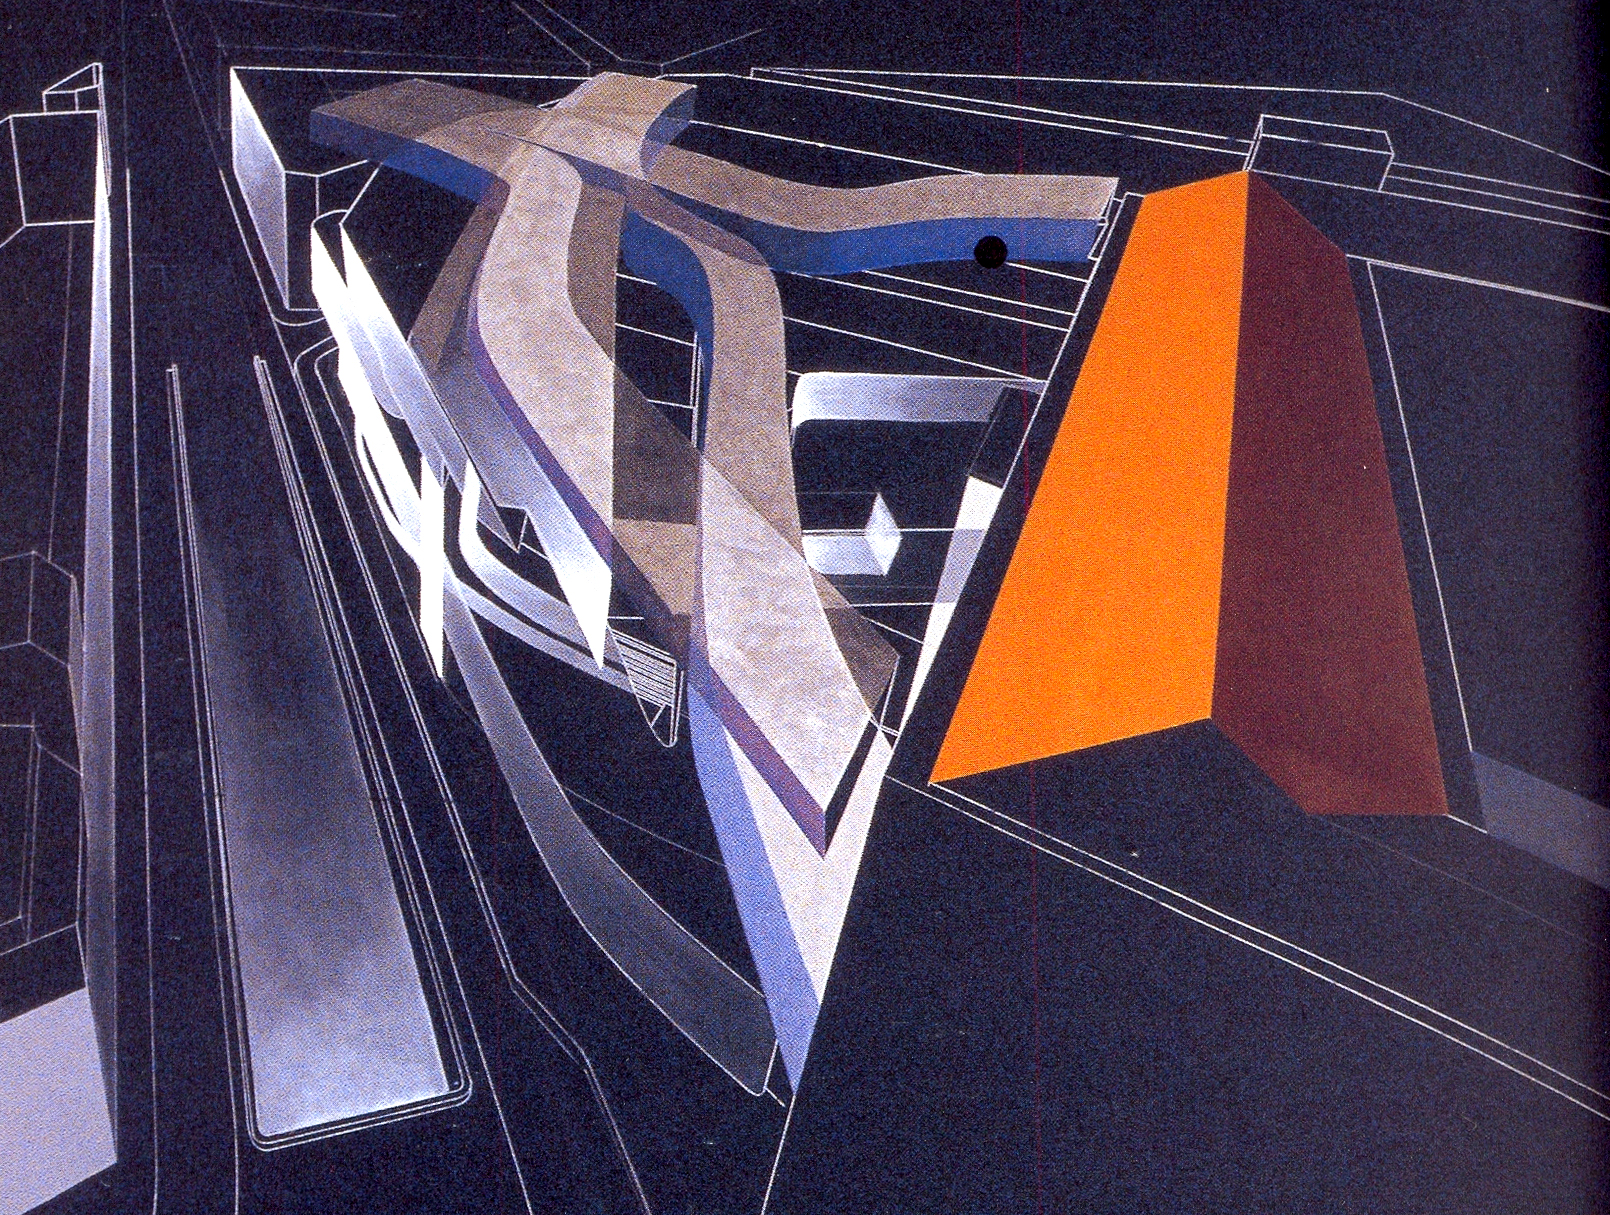 Reina Sofia Museum, Aerial perspective and layering, Zaha Hadid, 1999